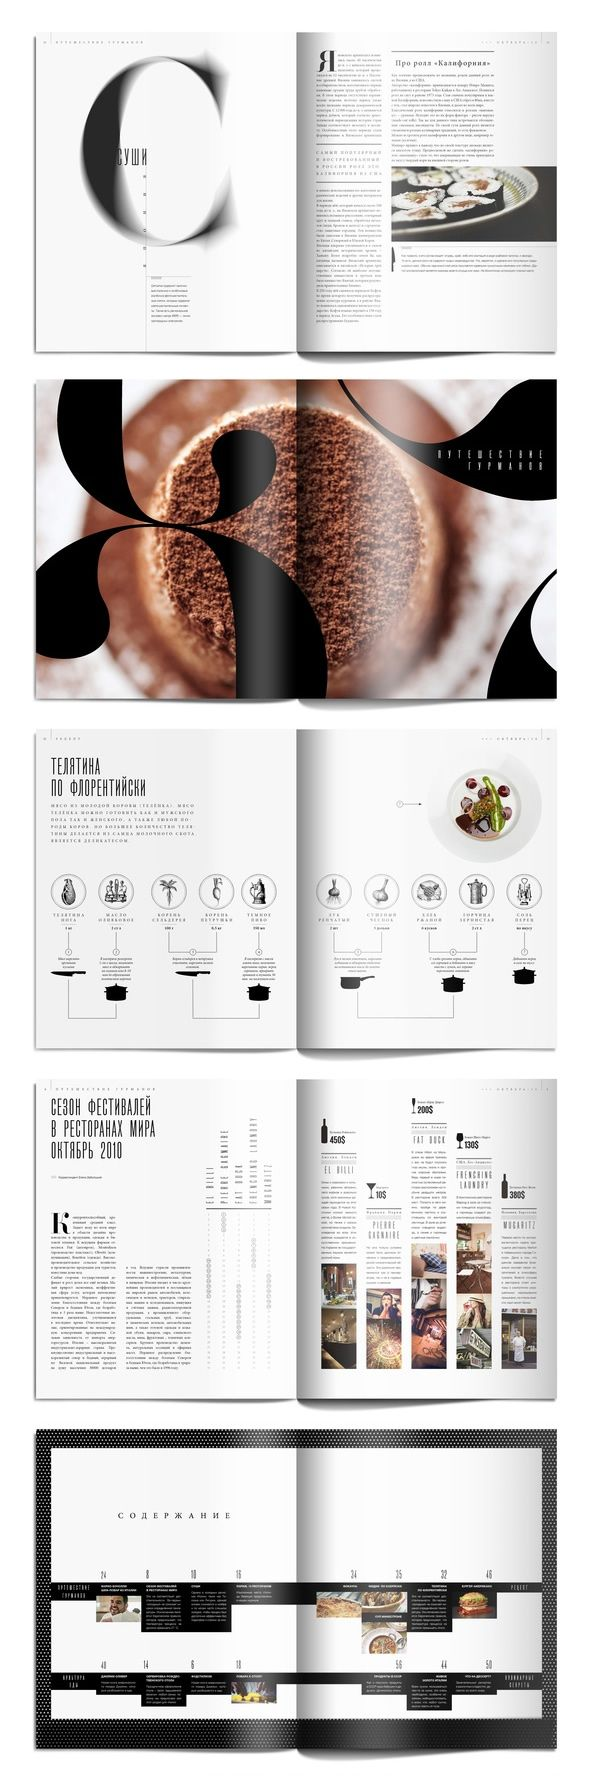 Food Magazine // Food & Editorial Design? Best of both worlds...